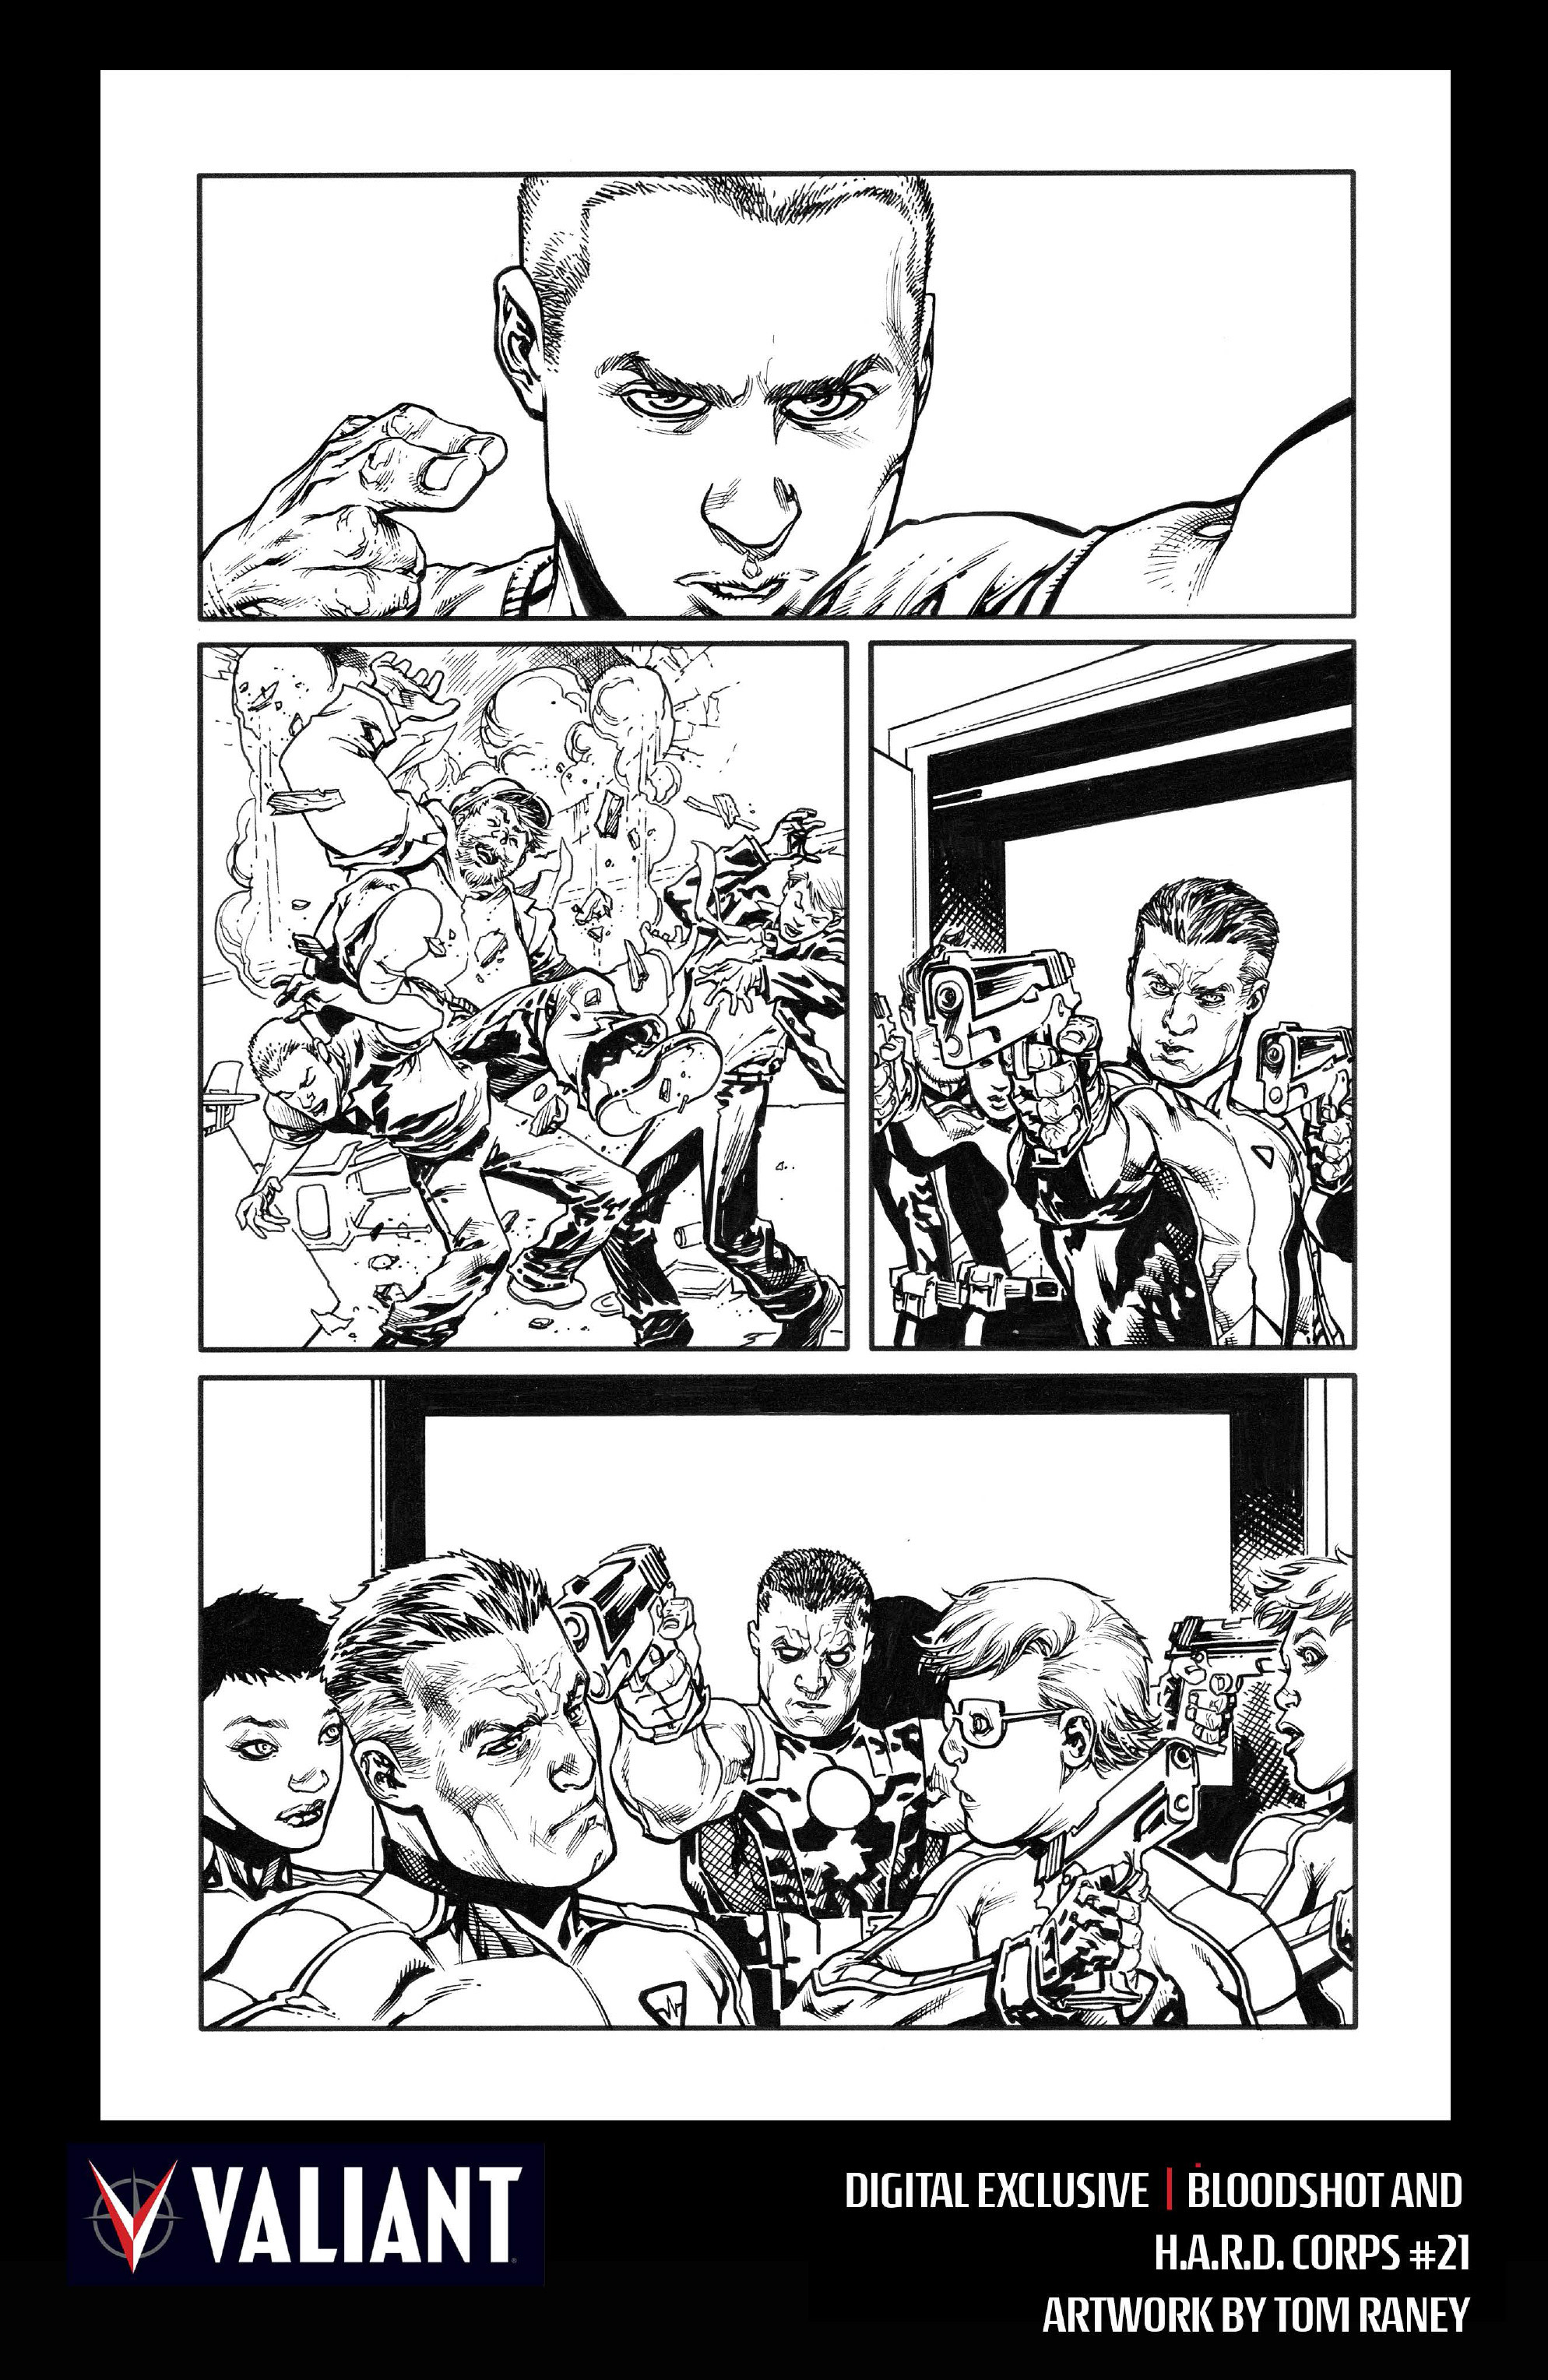 Read online Bloodshot and H.A.R.D.Corps comic -  Issue #21 - 24